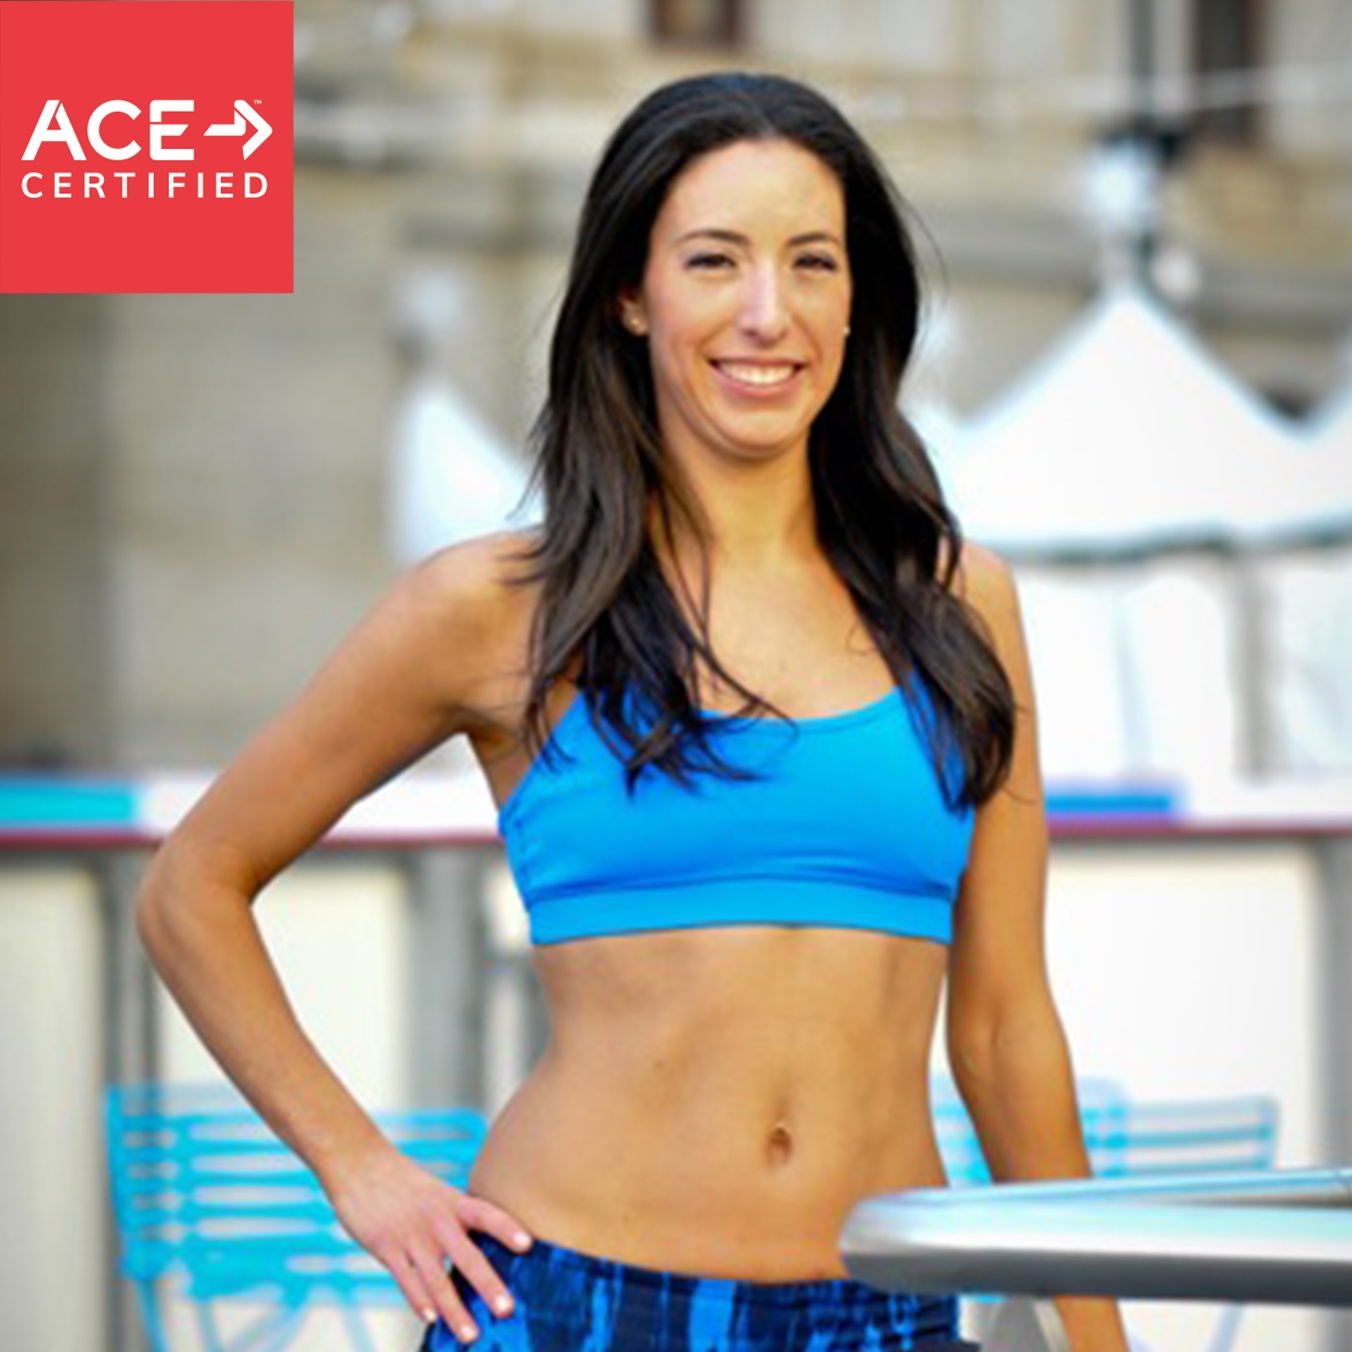 robin ace certified personal trainer